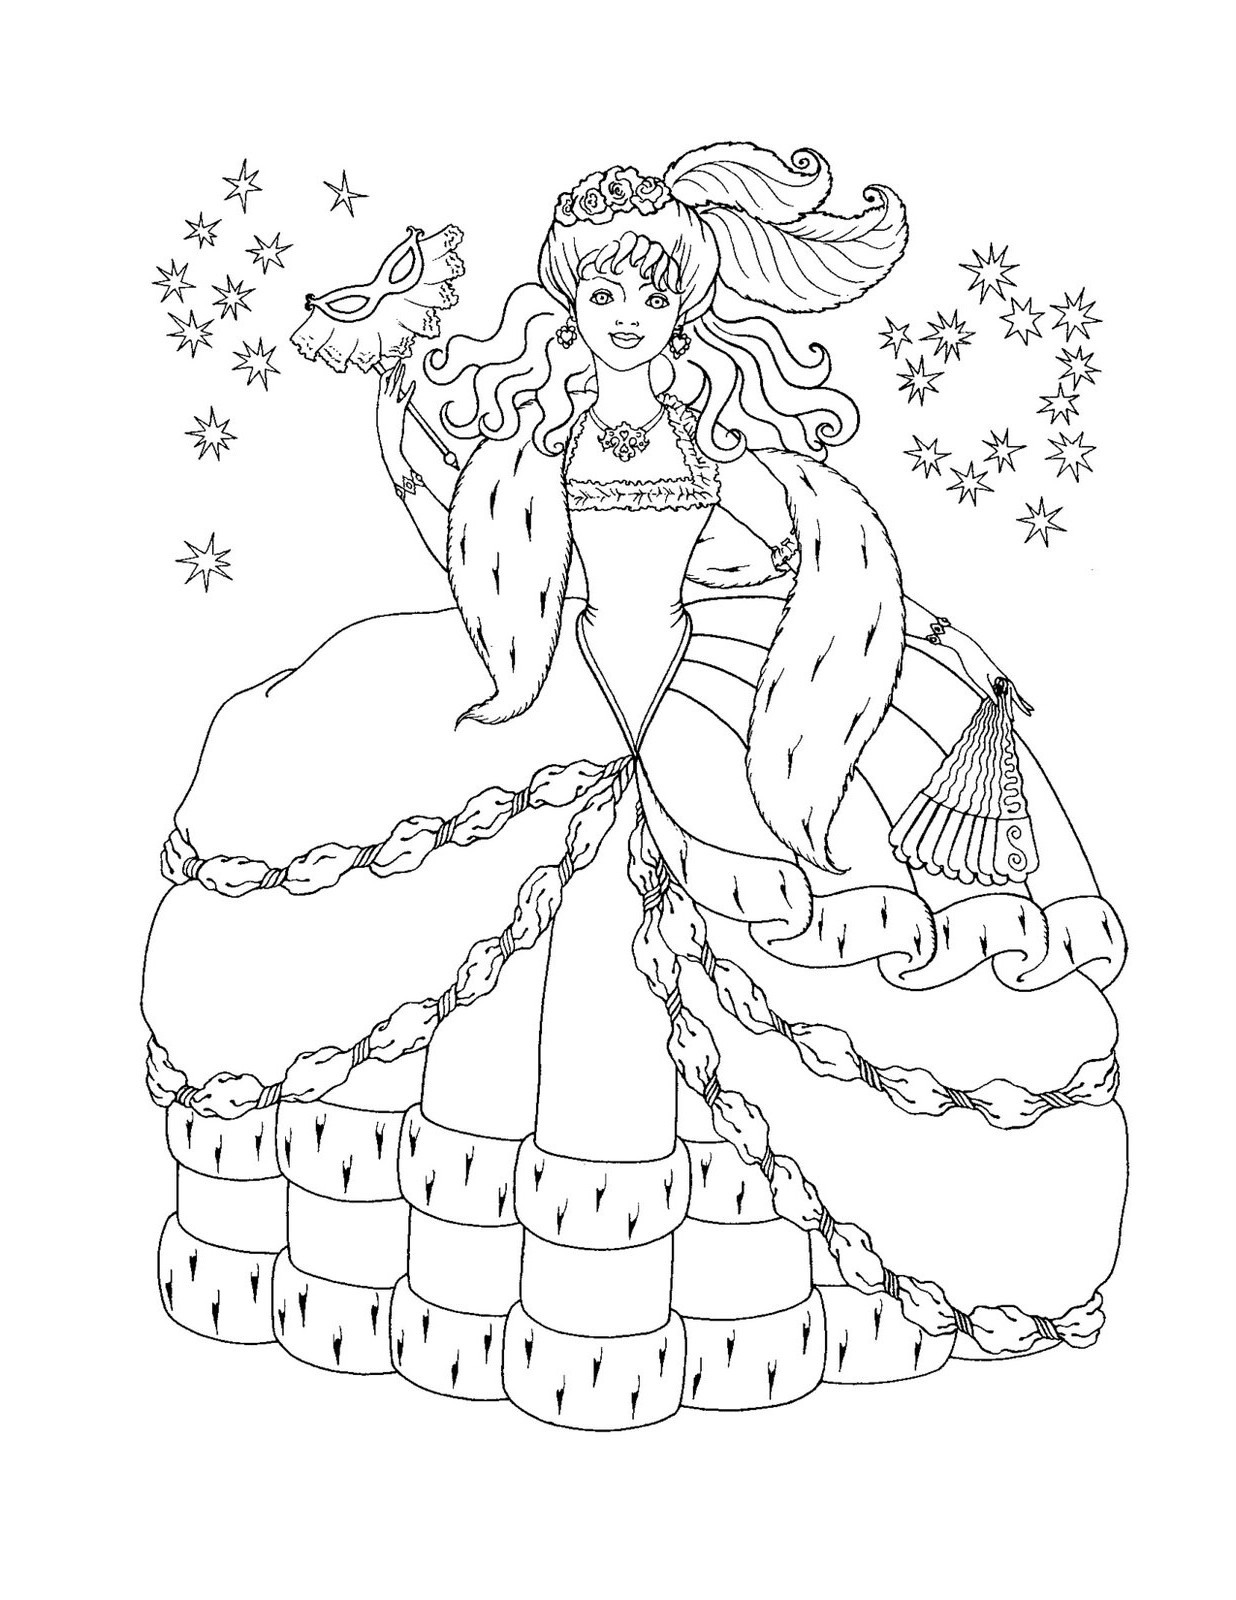 Free Coloring Pages Princesses  Free Printable Disney Princess Coloring Pages For Kids